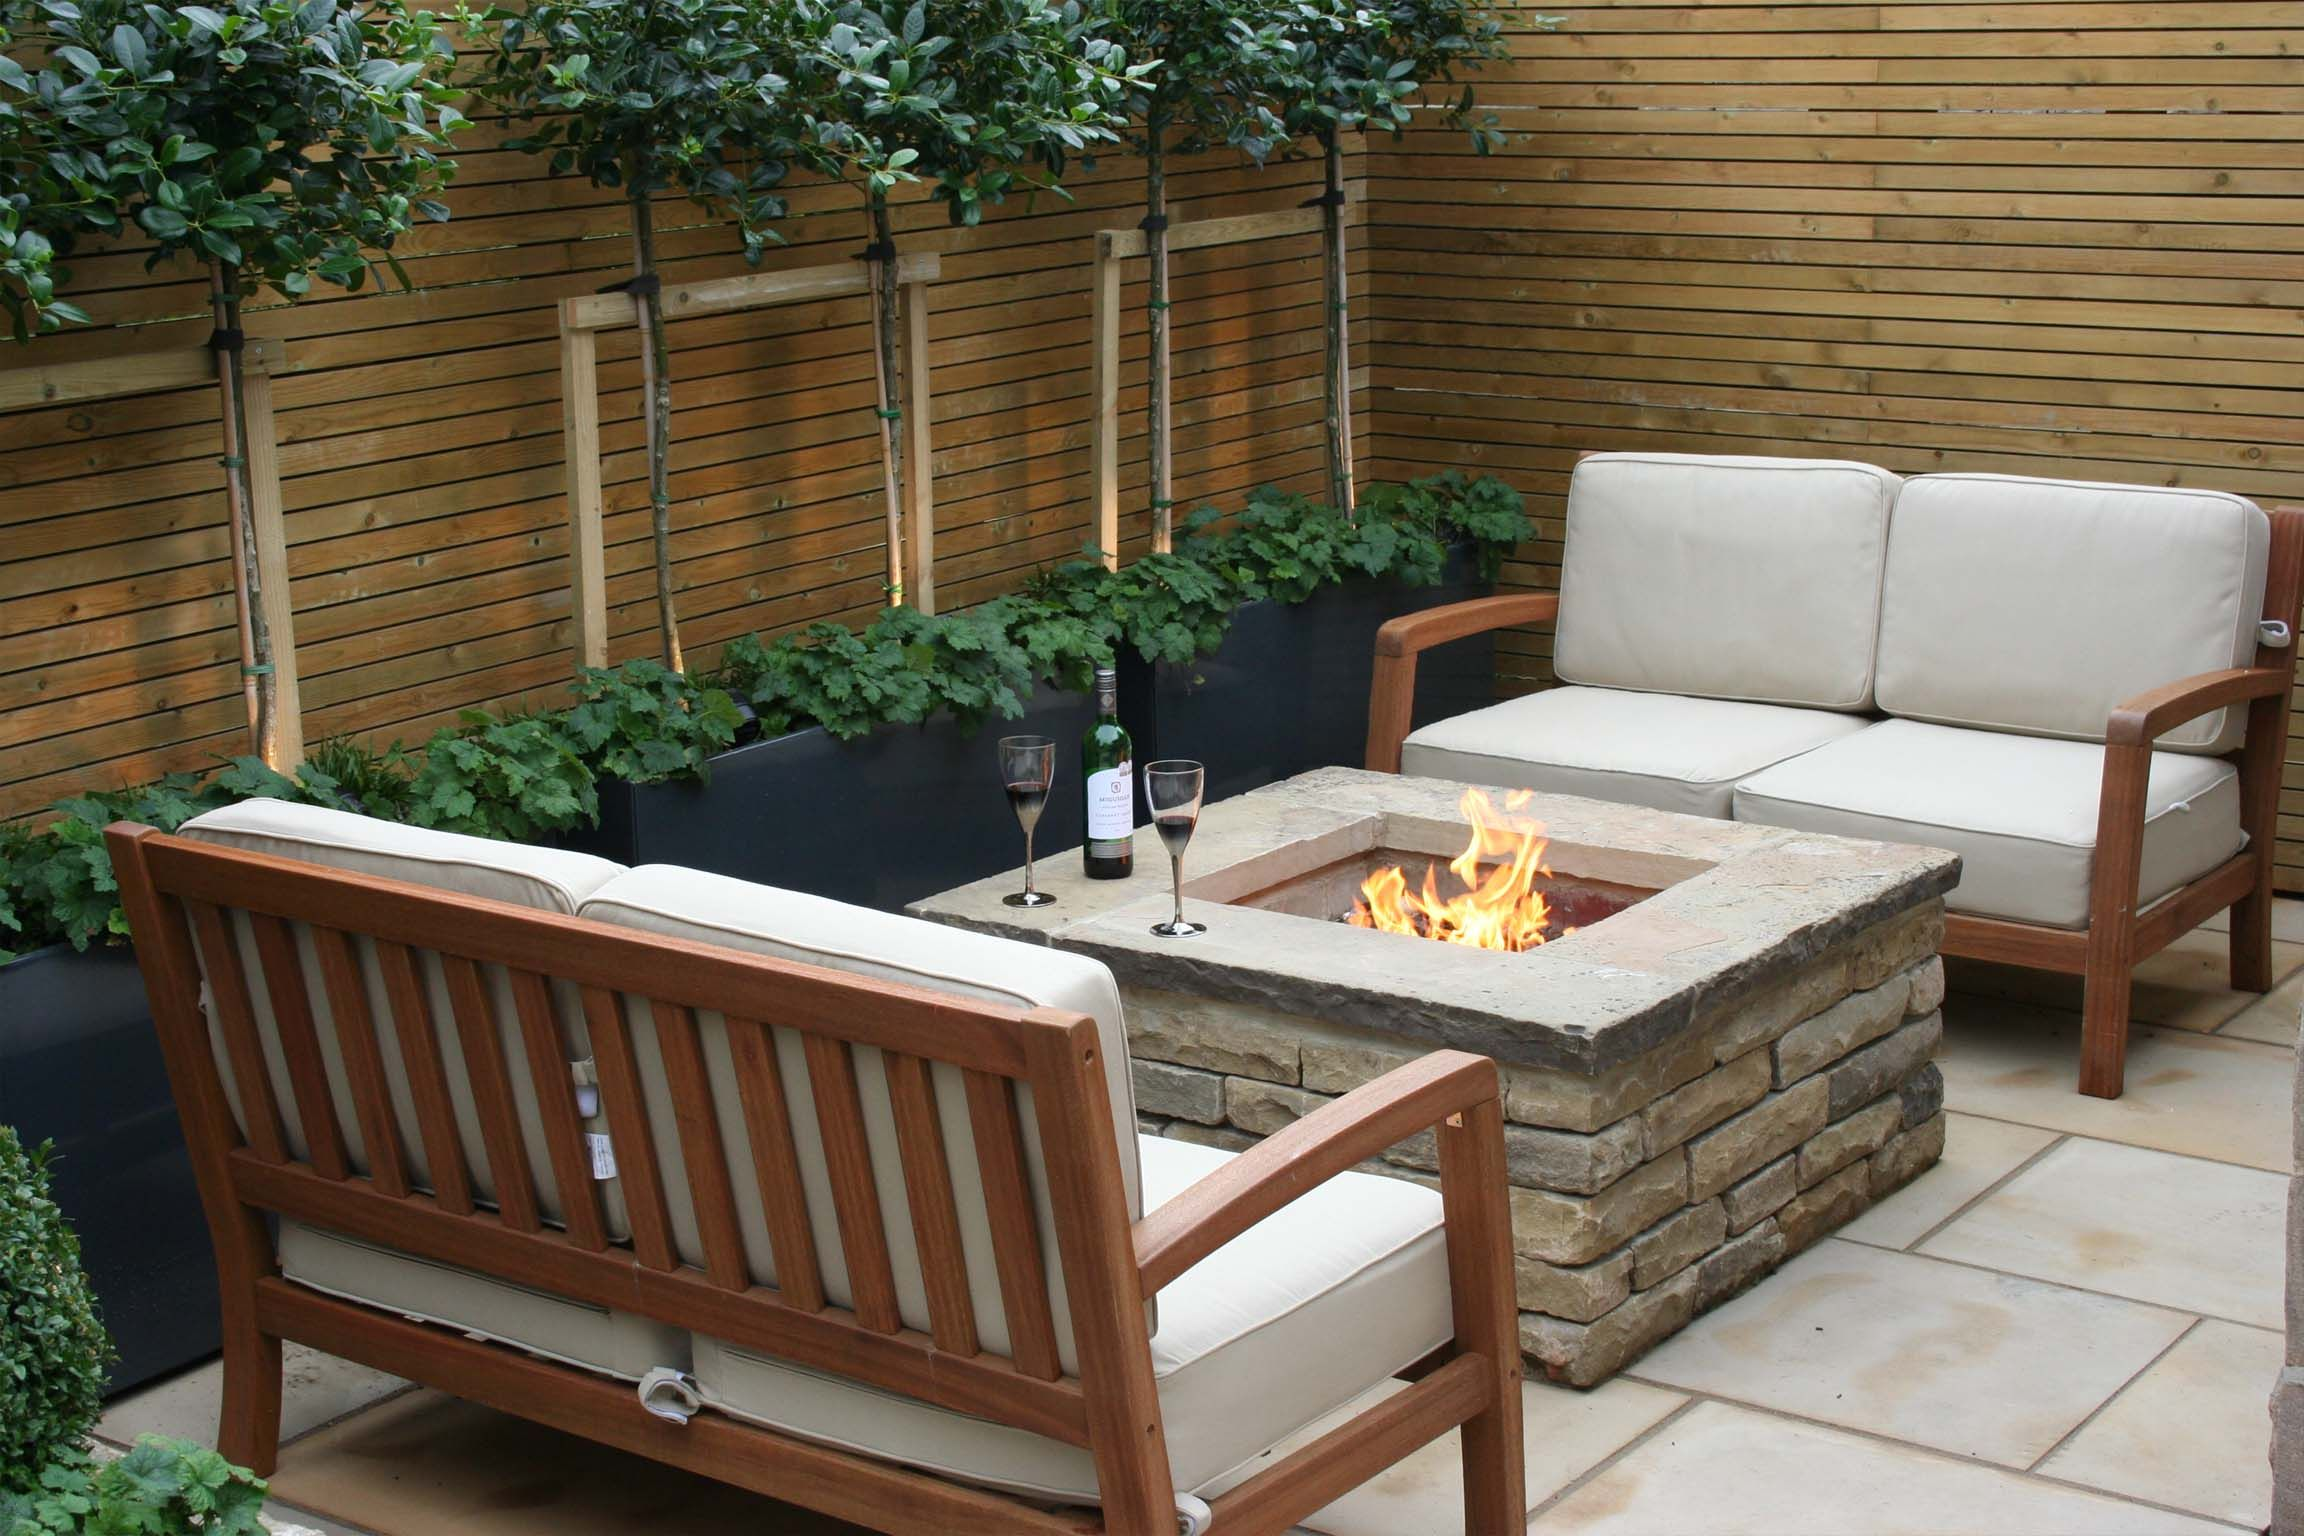 Urban Chic Courtyard Garden Outdoor Fire Pit Outdoor Sofas Bestall U0026 Co Evergreen Planting   Sawn Stone